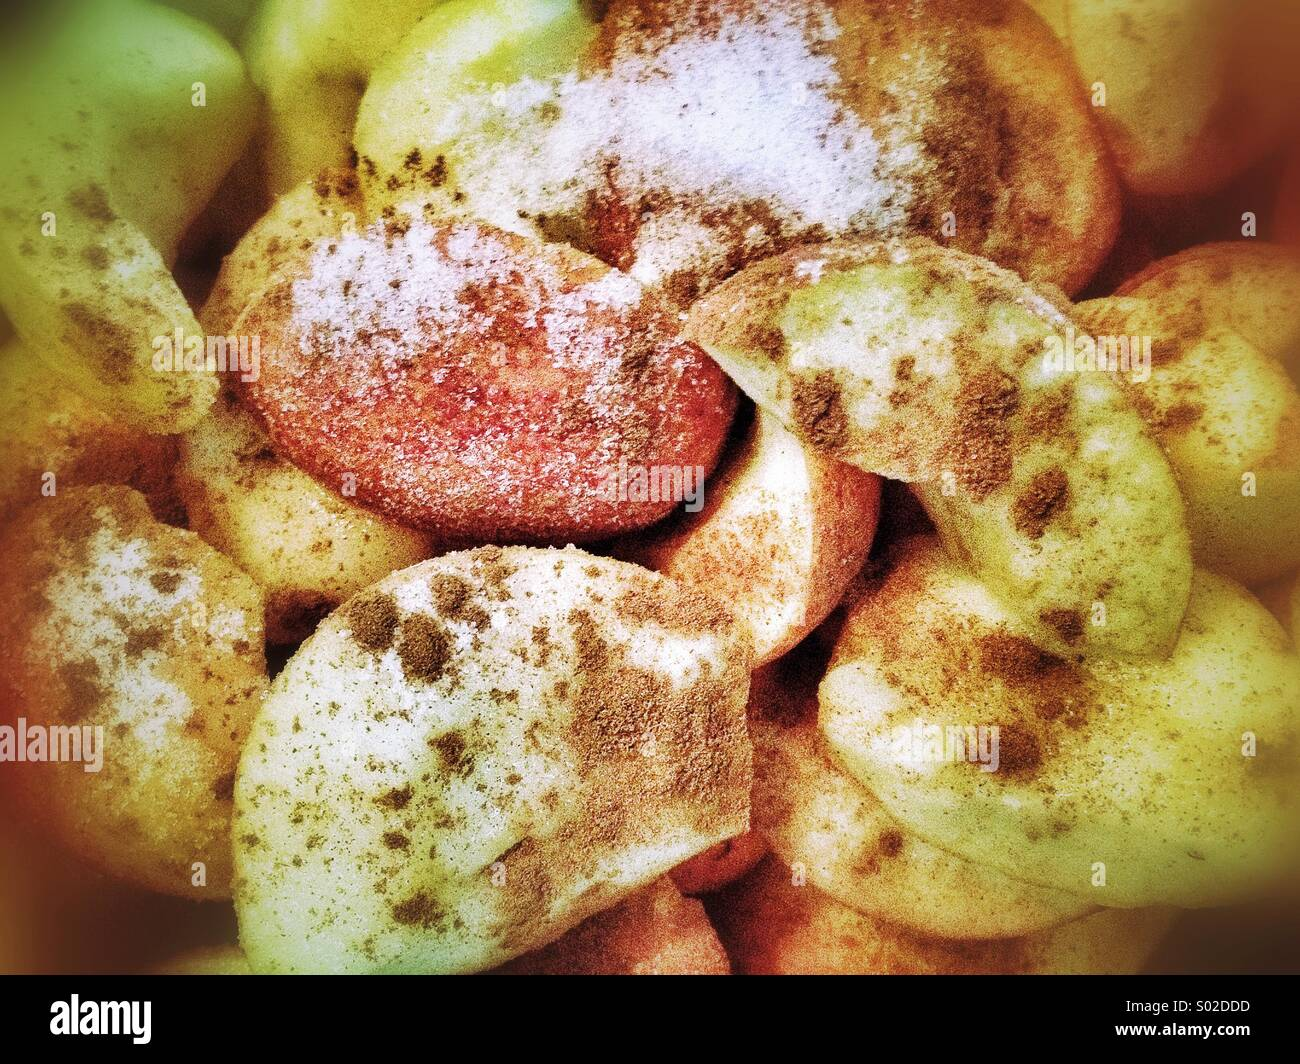 Apples with sugar and cinnamon, making cider - Stock Image